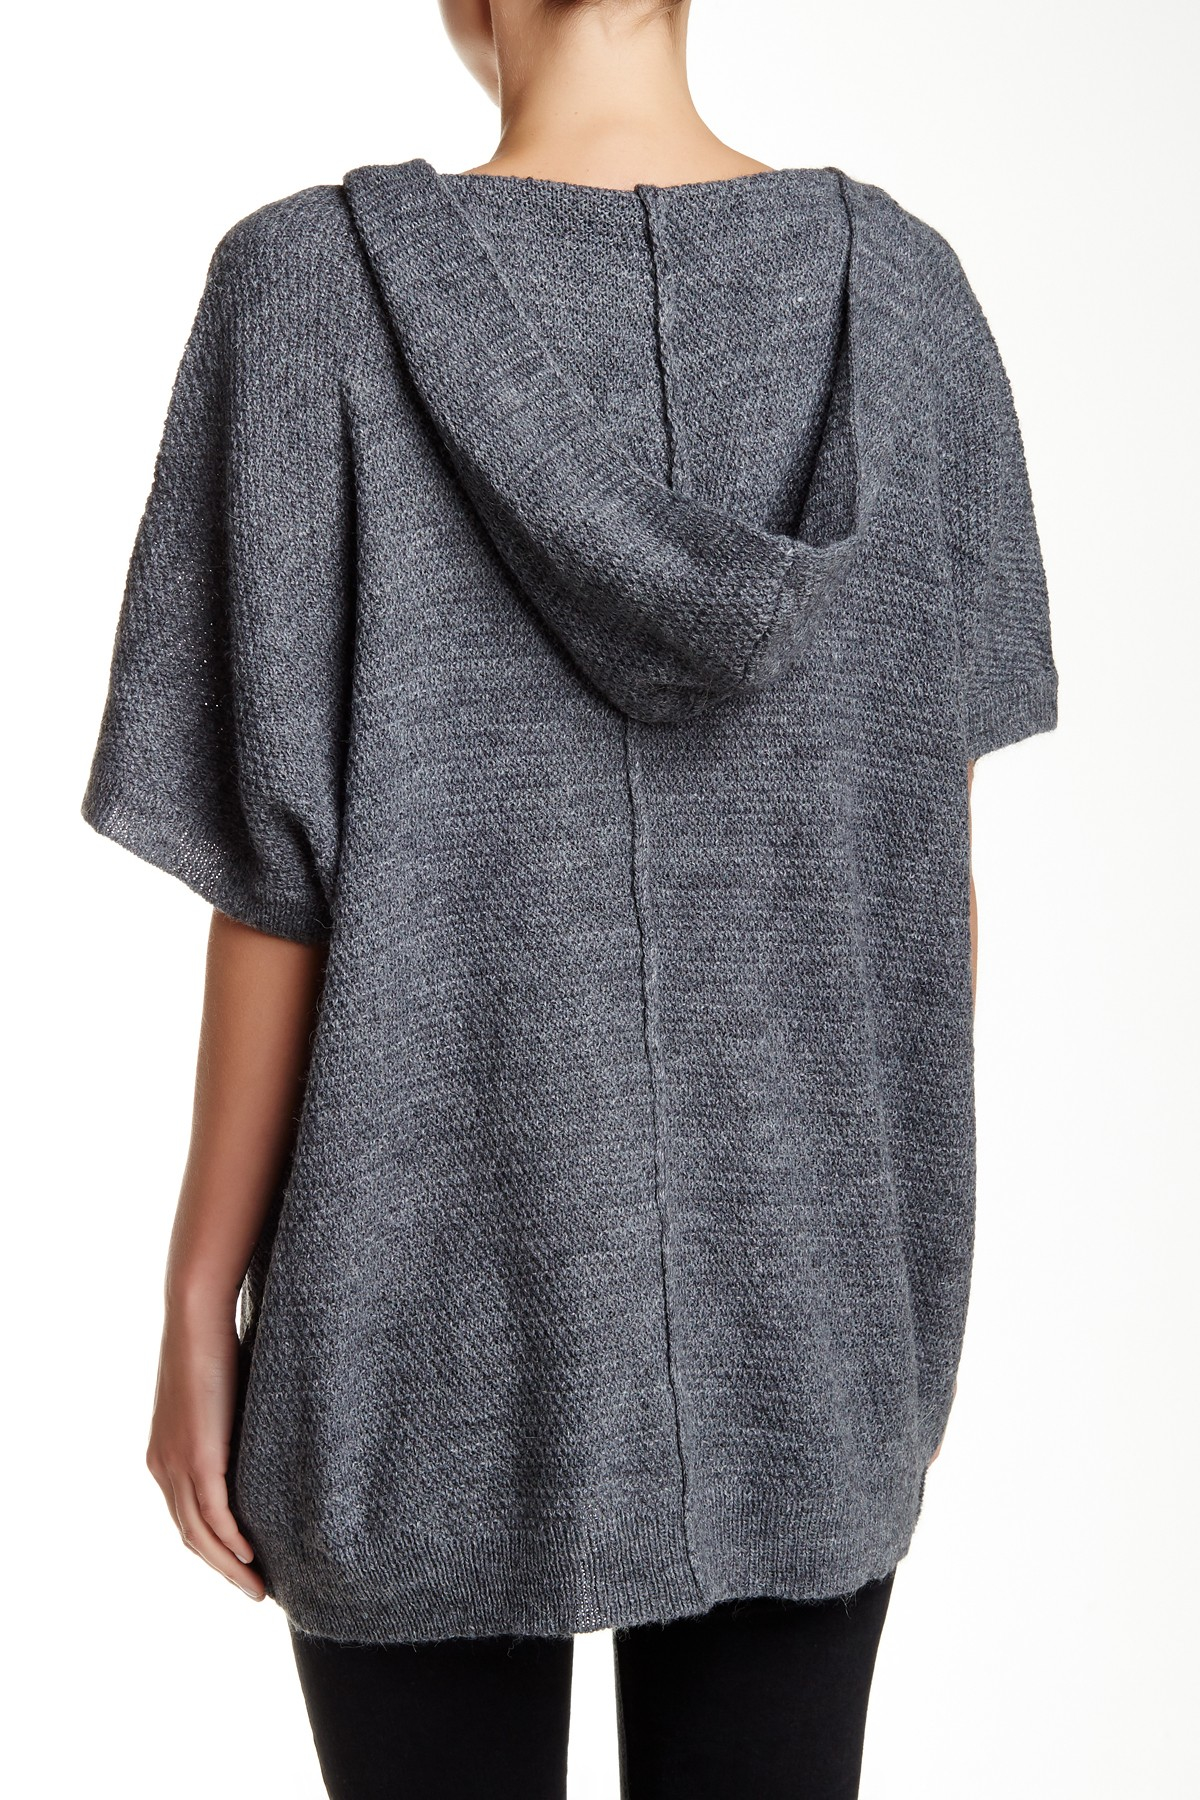 Splendid Short Sleeve Hooded Cardigan in Gray | Lyst